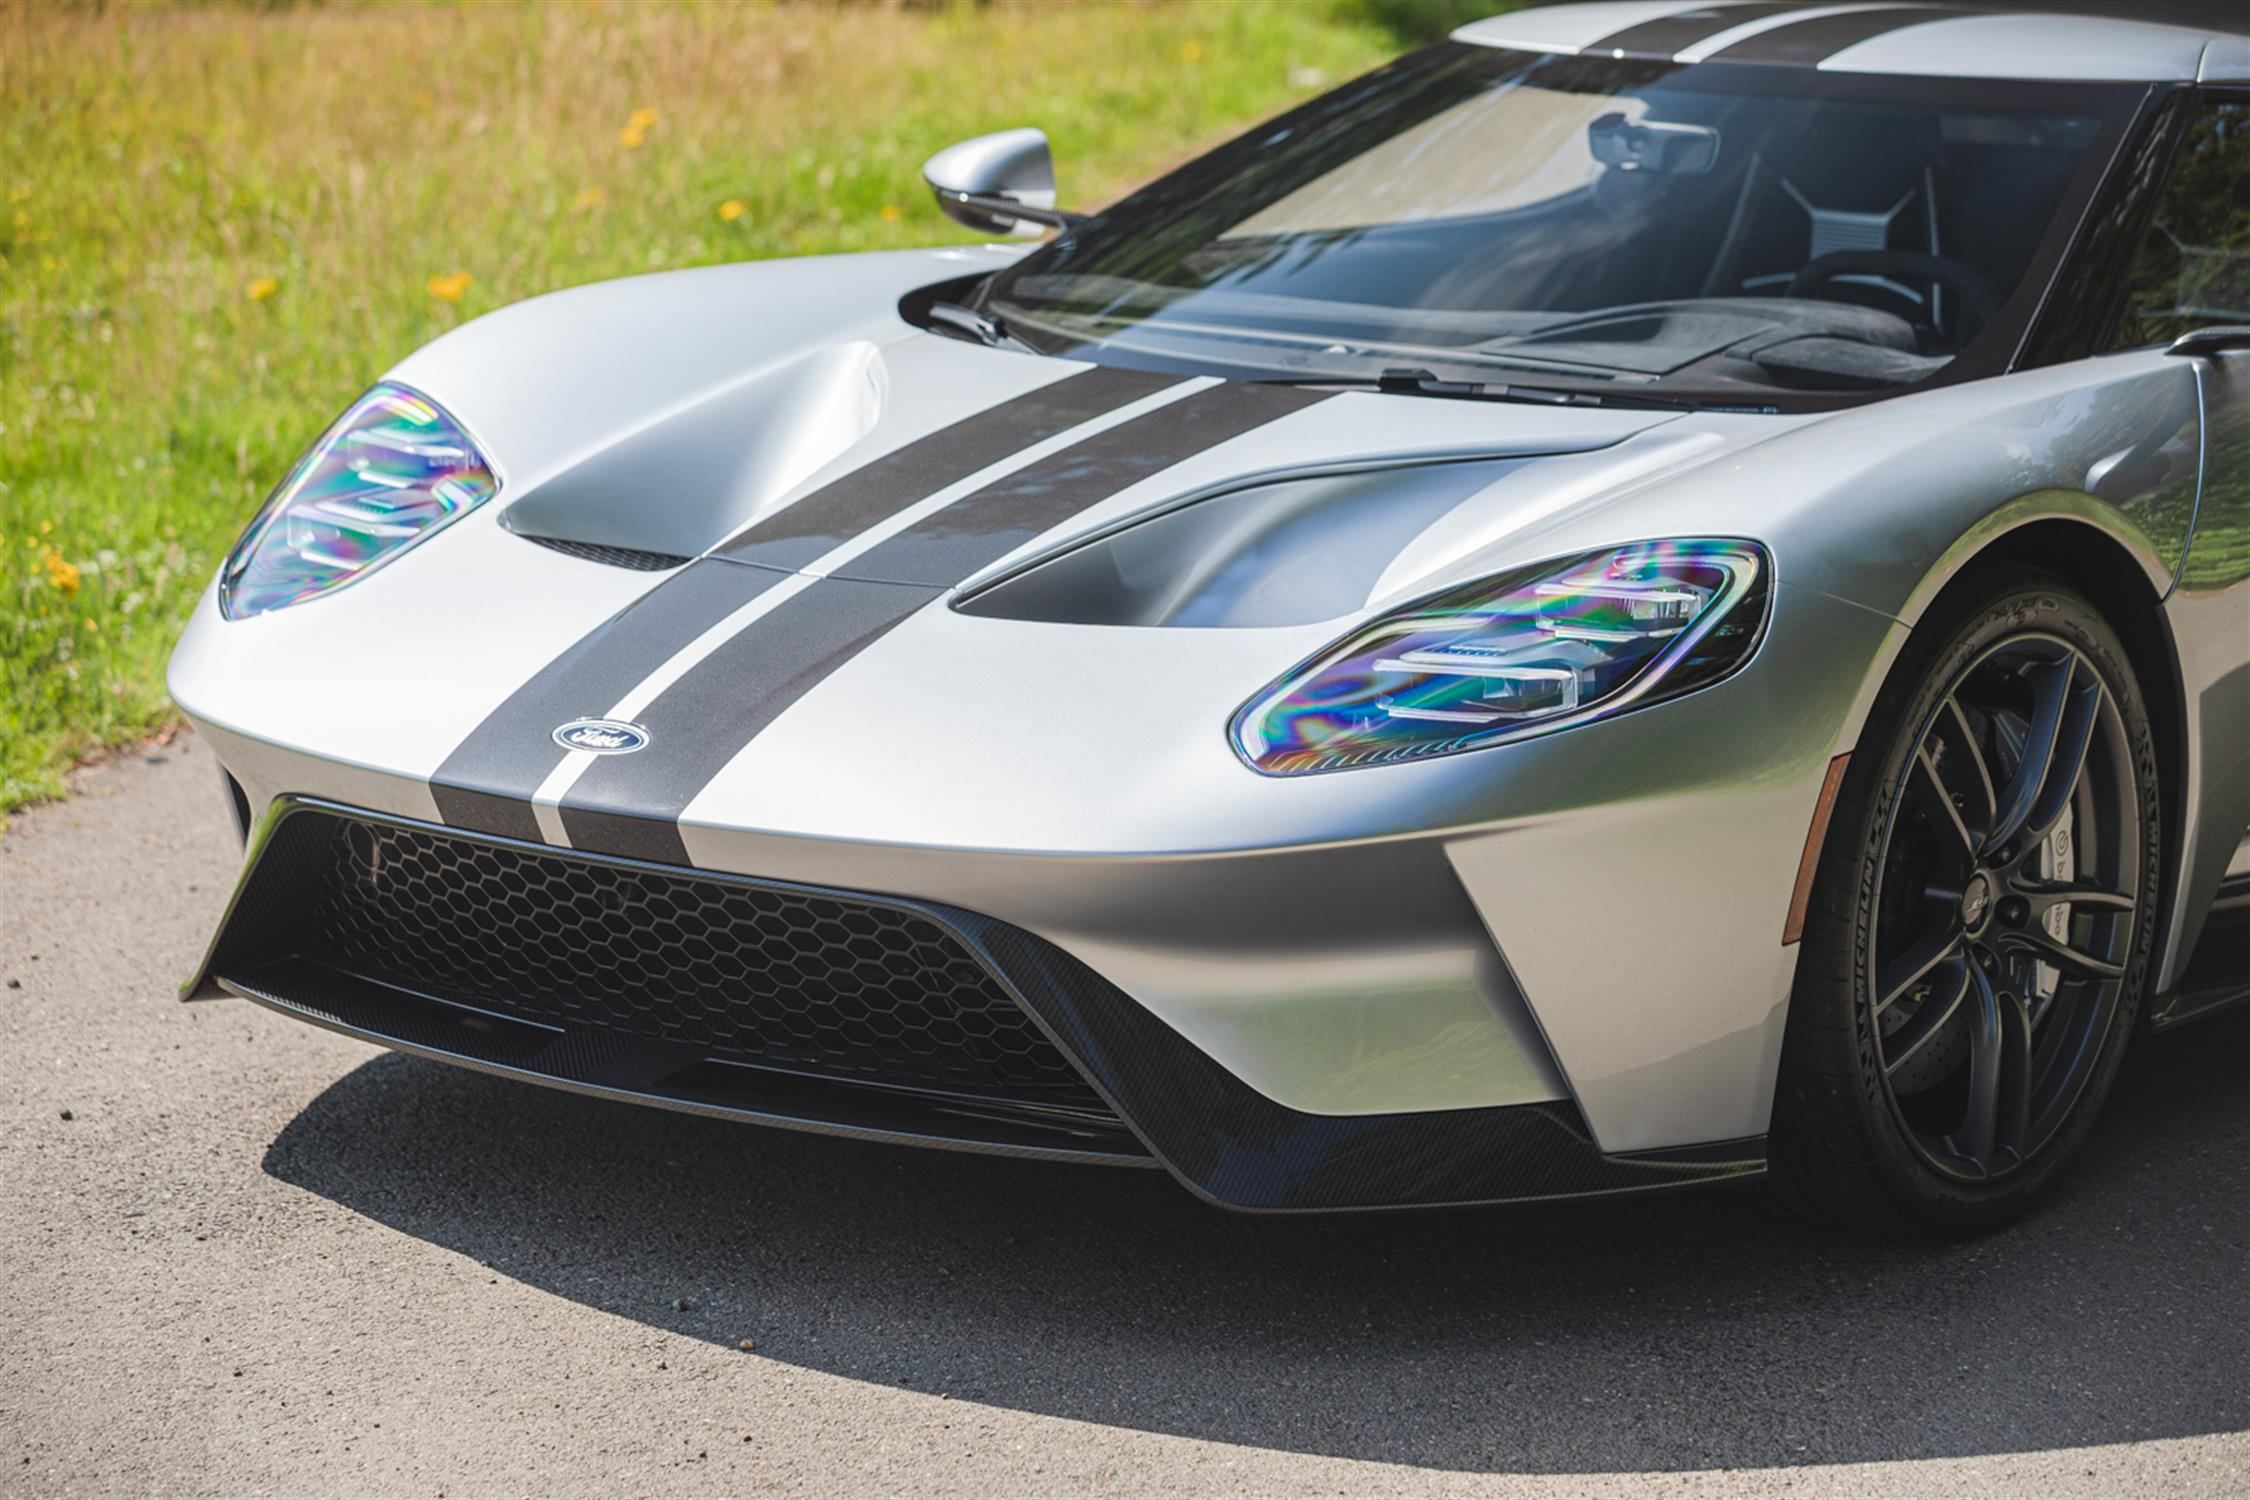 2018 Ford GT - Image 18 of 20